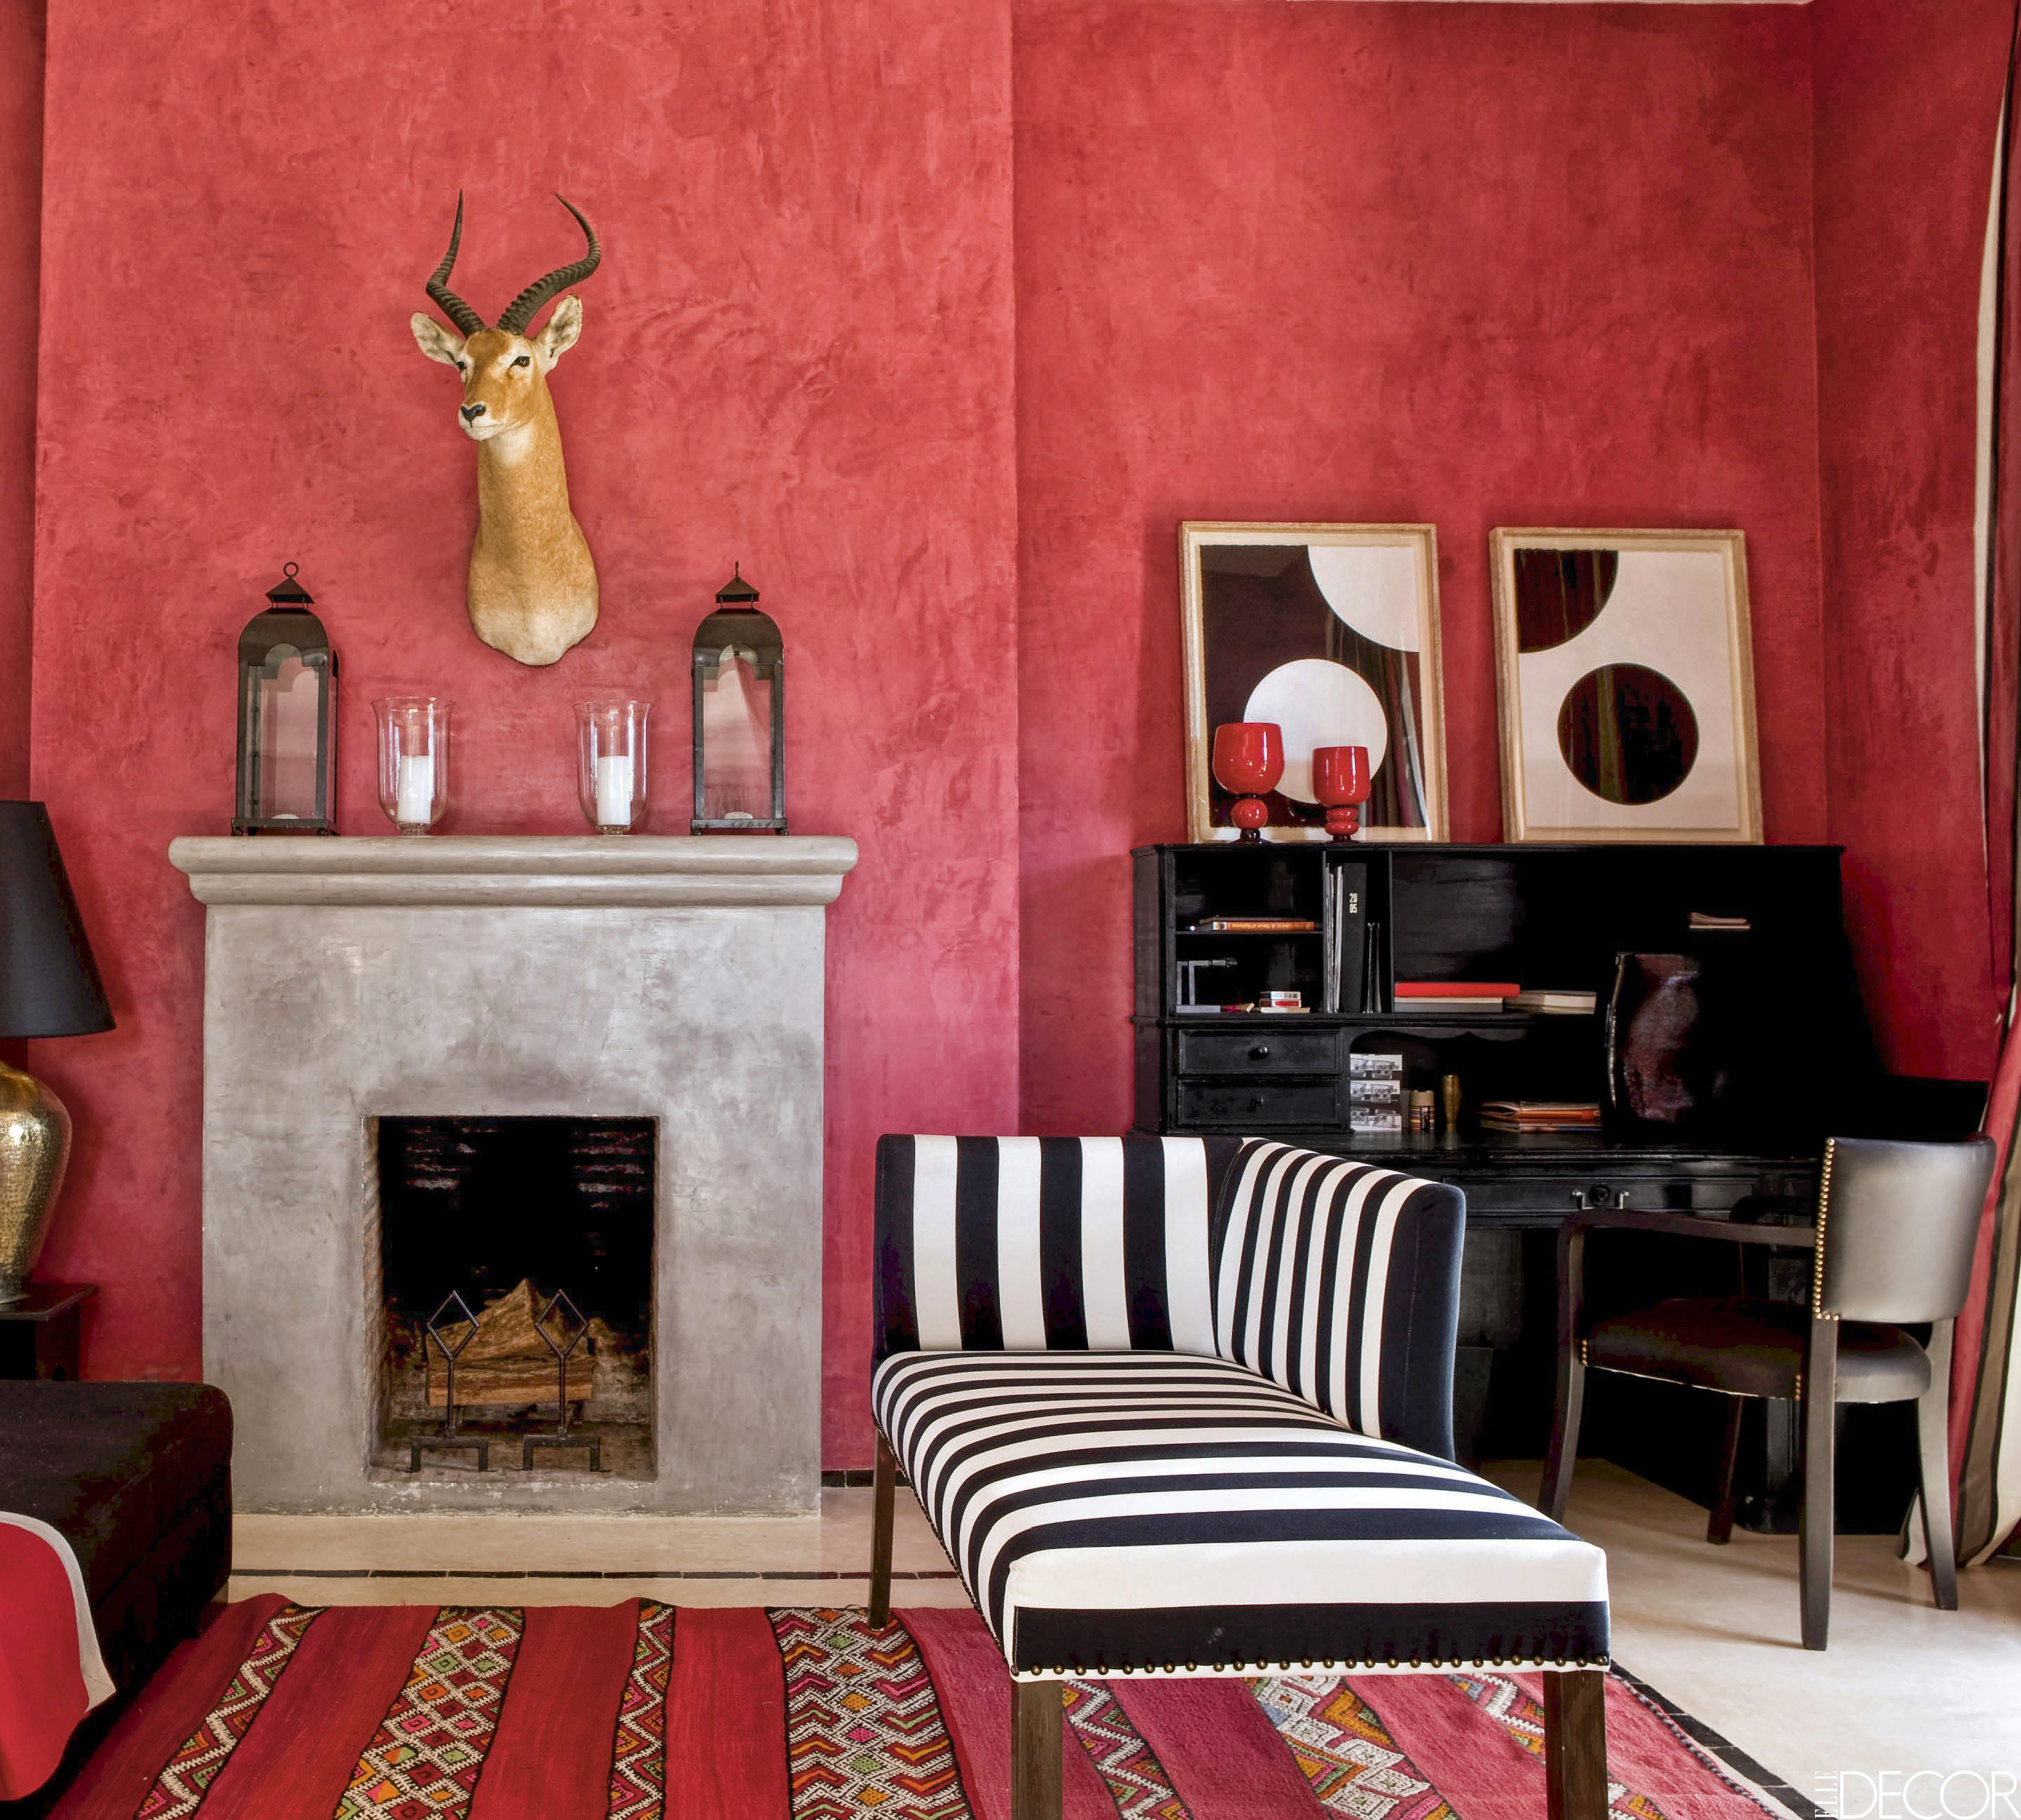 20 best wall decoration ideas wall covering and wall art for Best wall art ideas